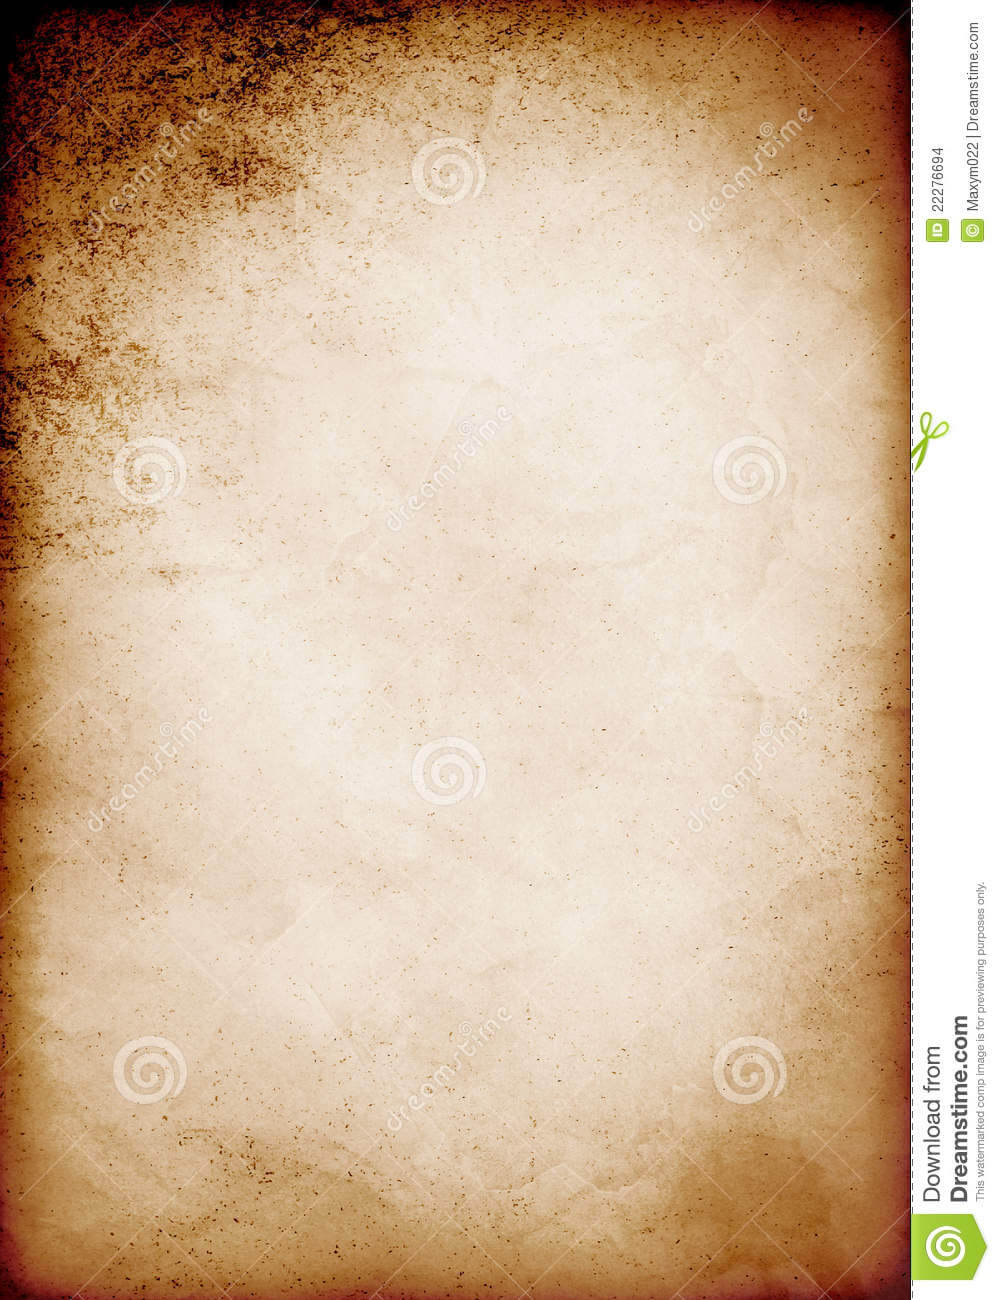 20 Old Paper Template For Word Images - Old Scroll Paper Regarding Scroll Paper Template Word